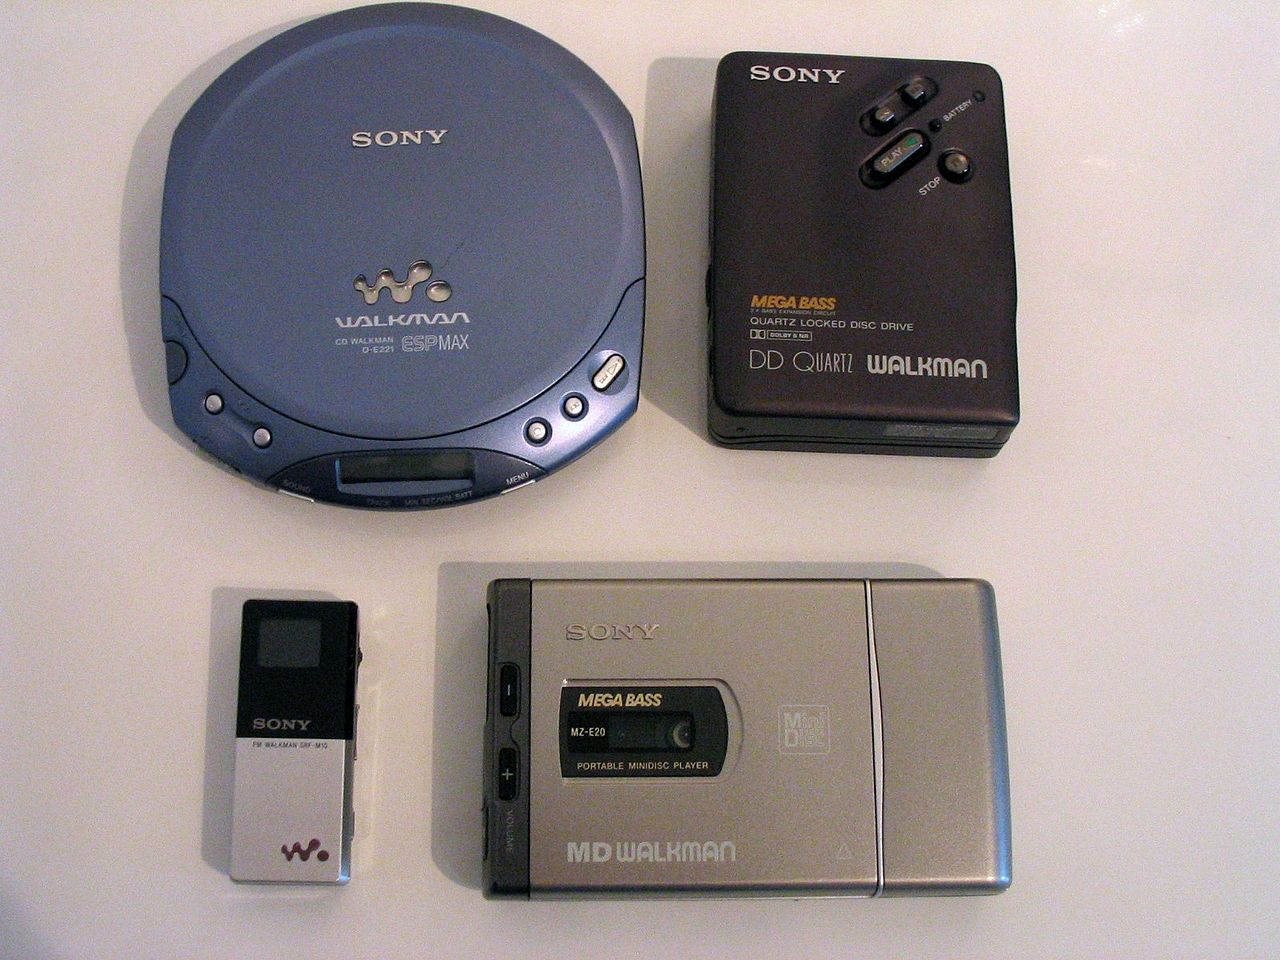 15 outdated devices that no longer exist!